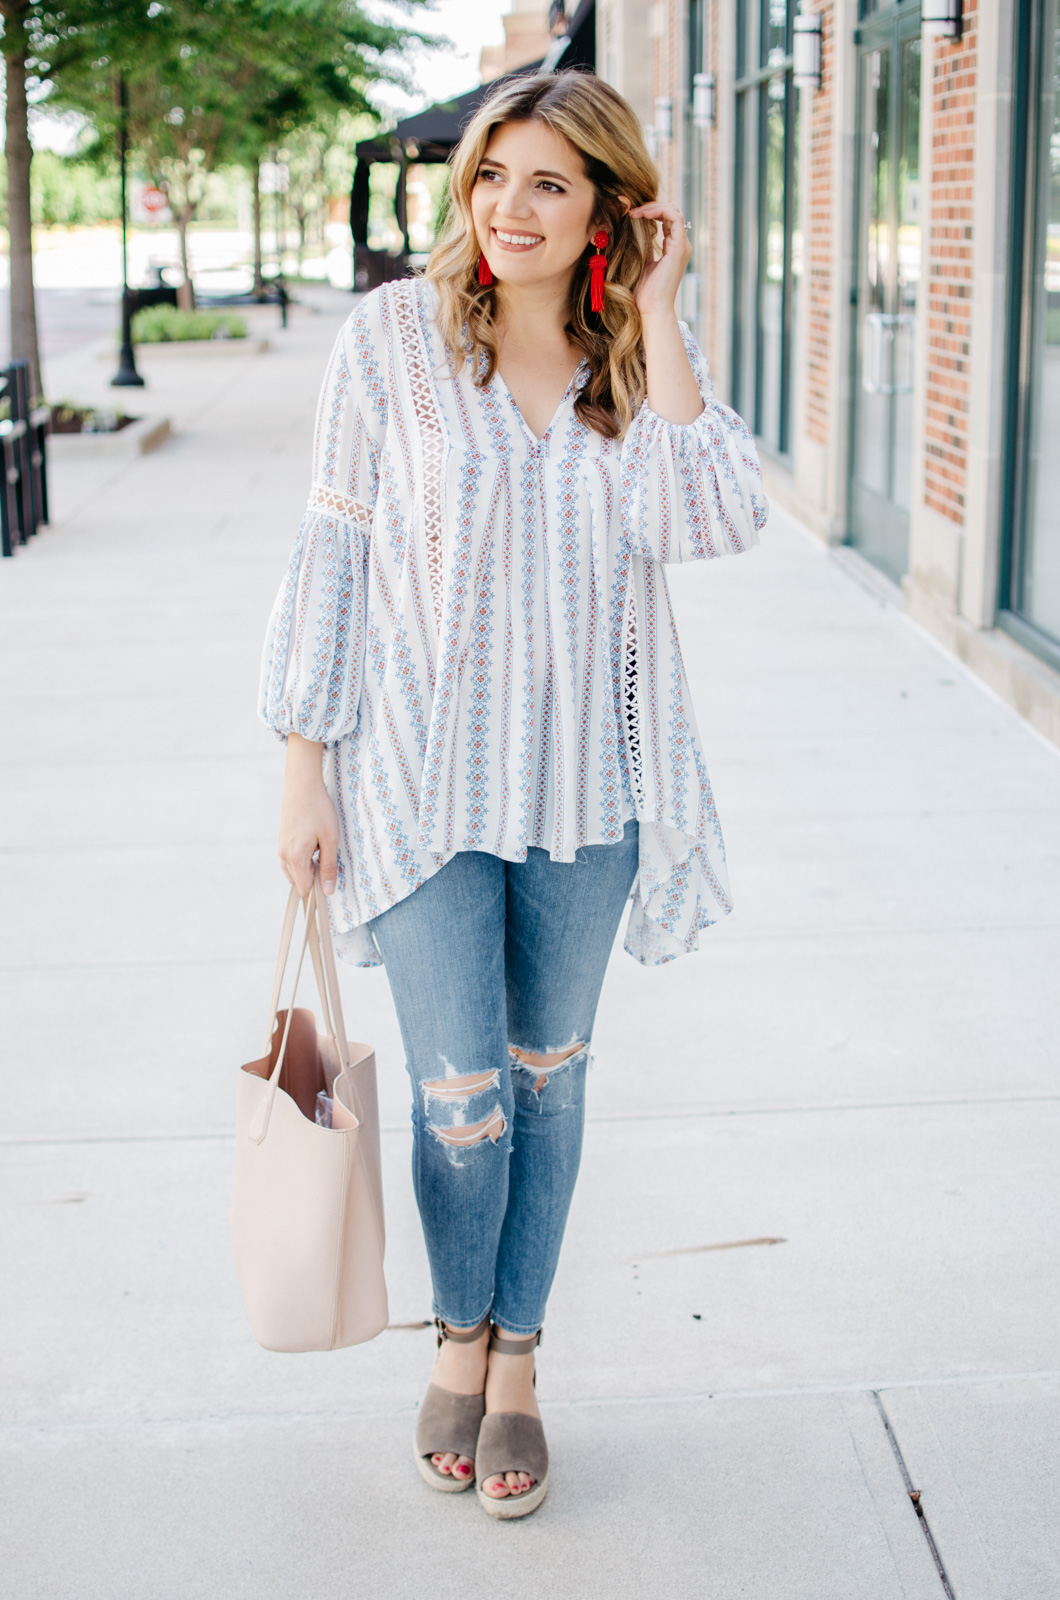 summer boho outfit idea - perfect boho top | For more cute spring outfit ideas, head to bylaurenm.com!